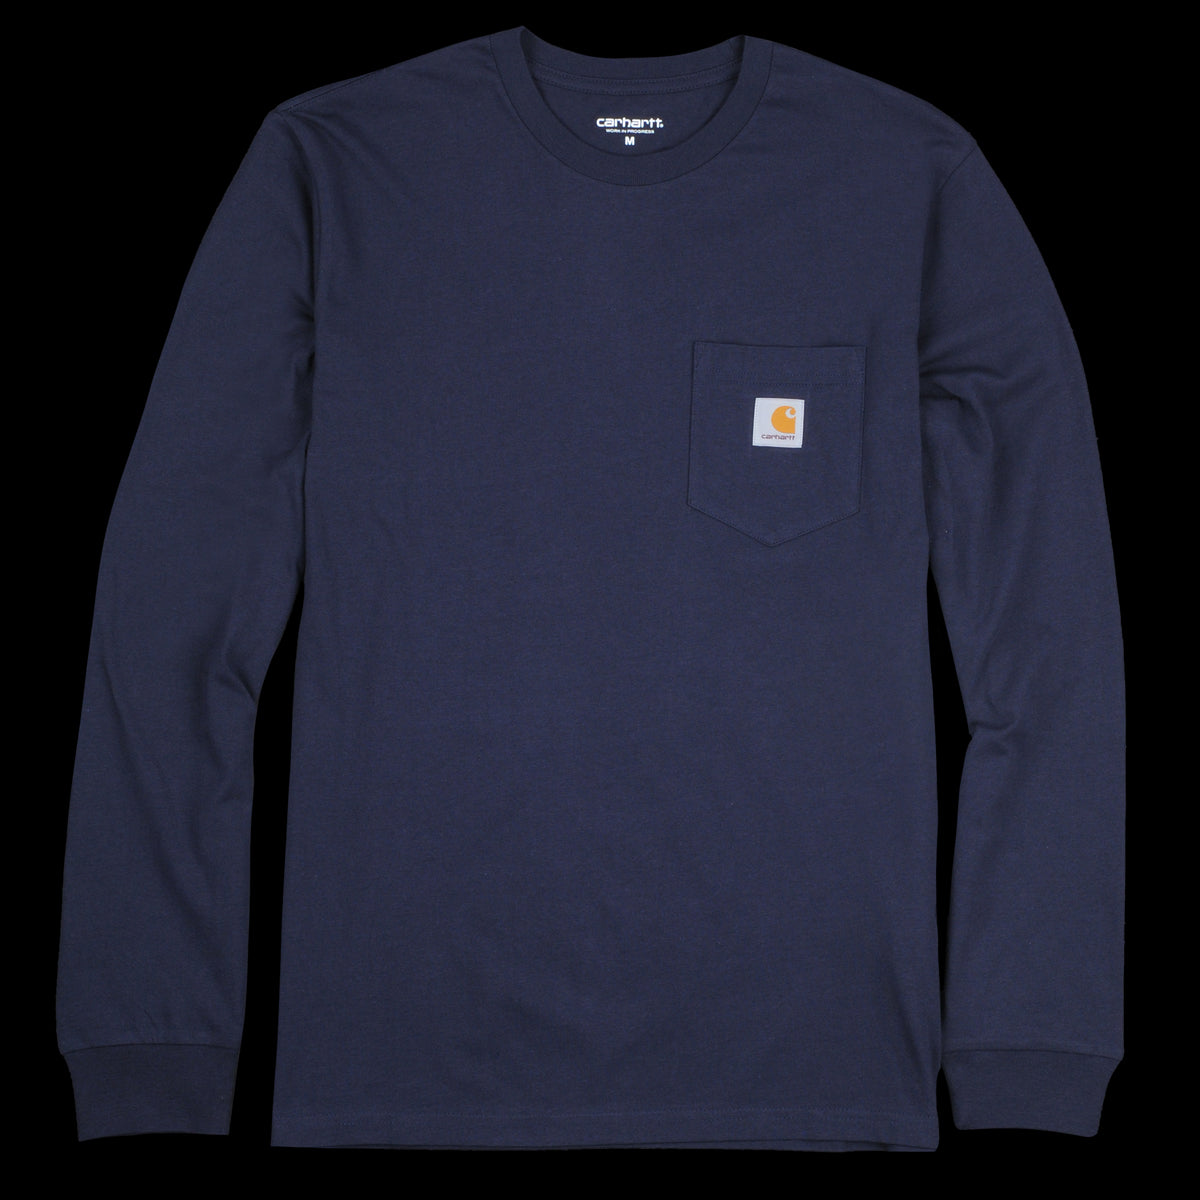 4b9ec48e4b11 Carhartt Wip - Long Sleeve Pocket Tee in Dark Navy - UNIONMADE